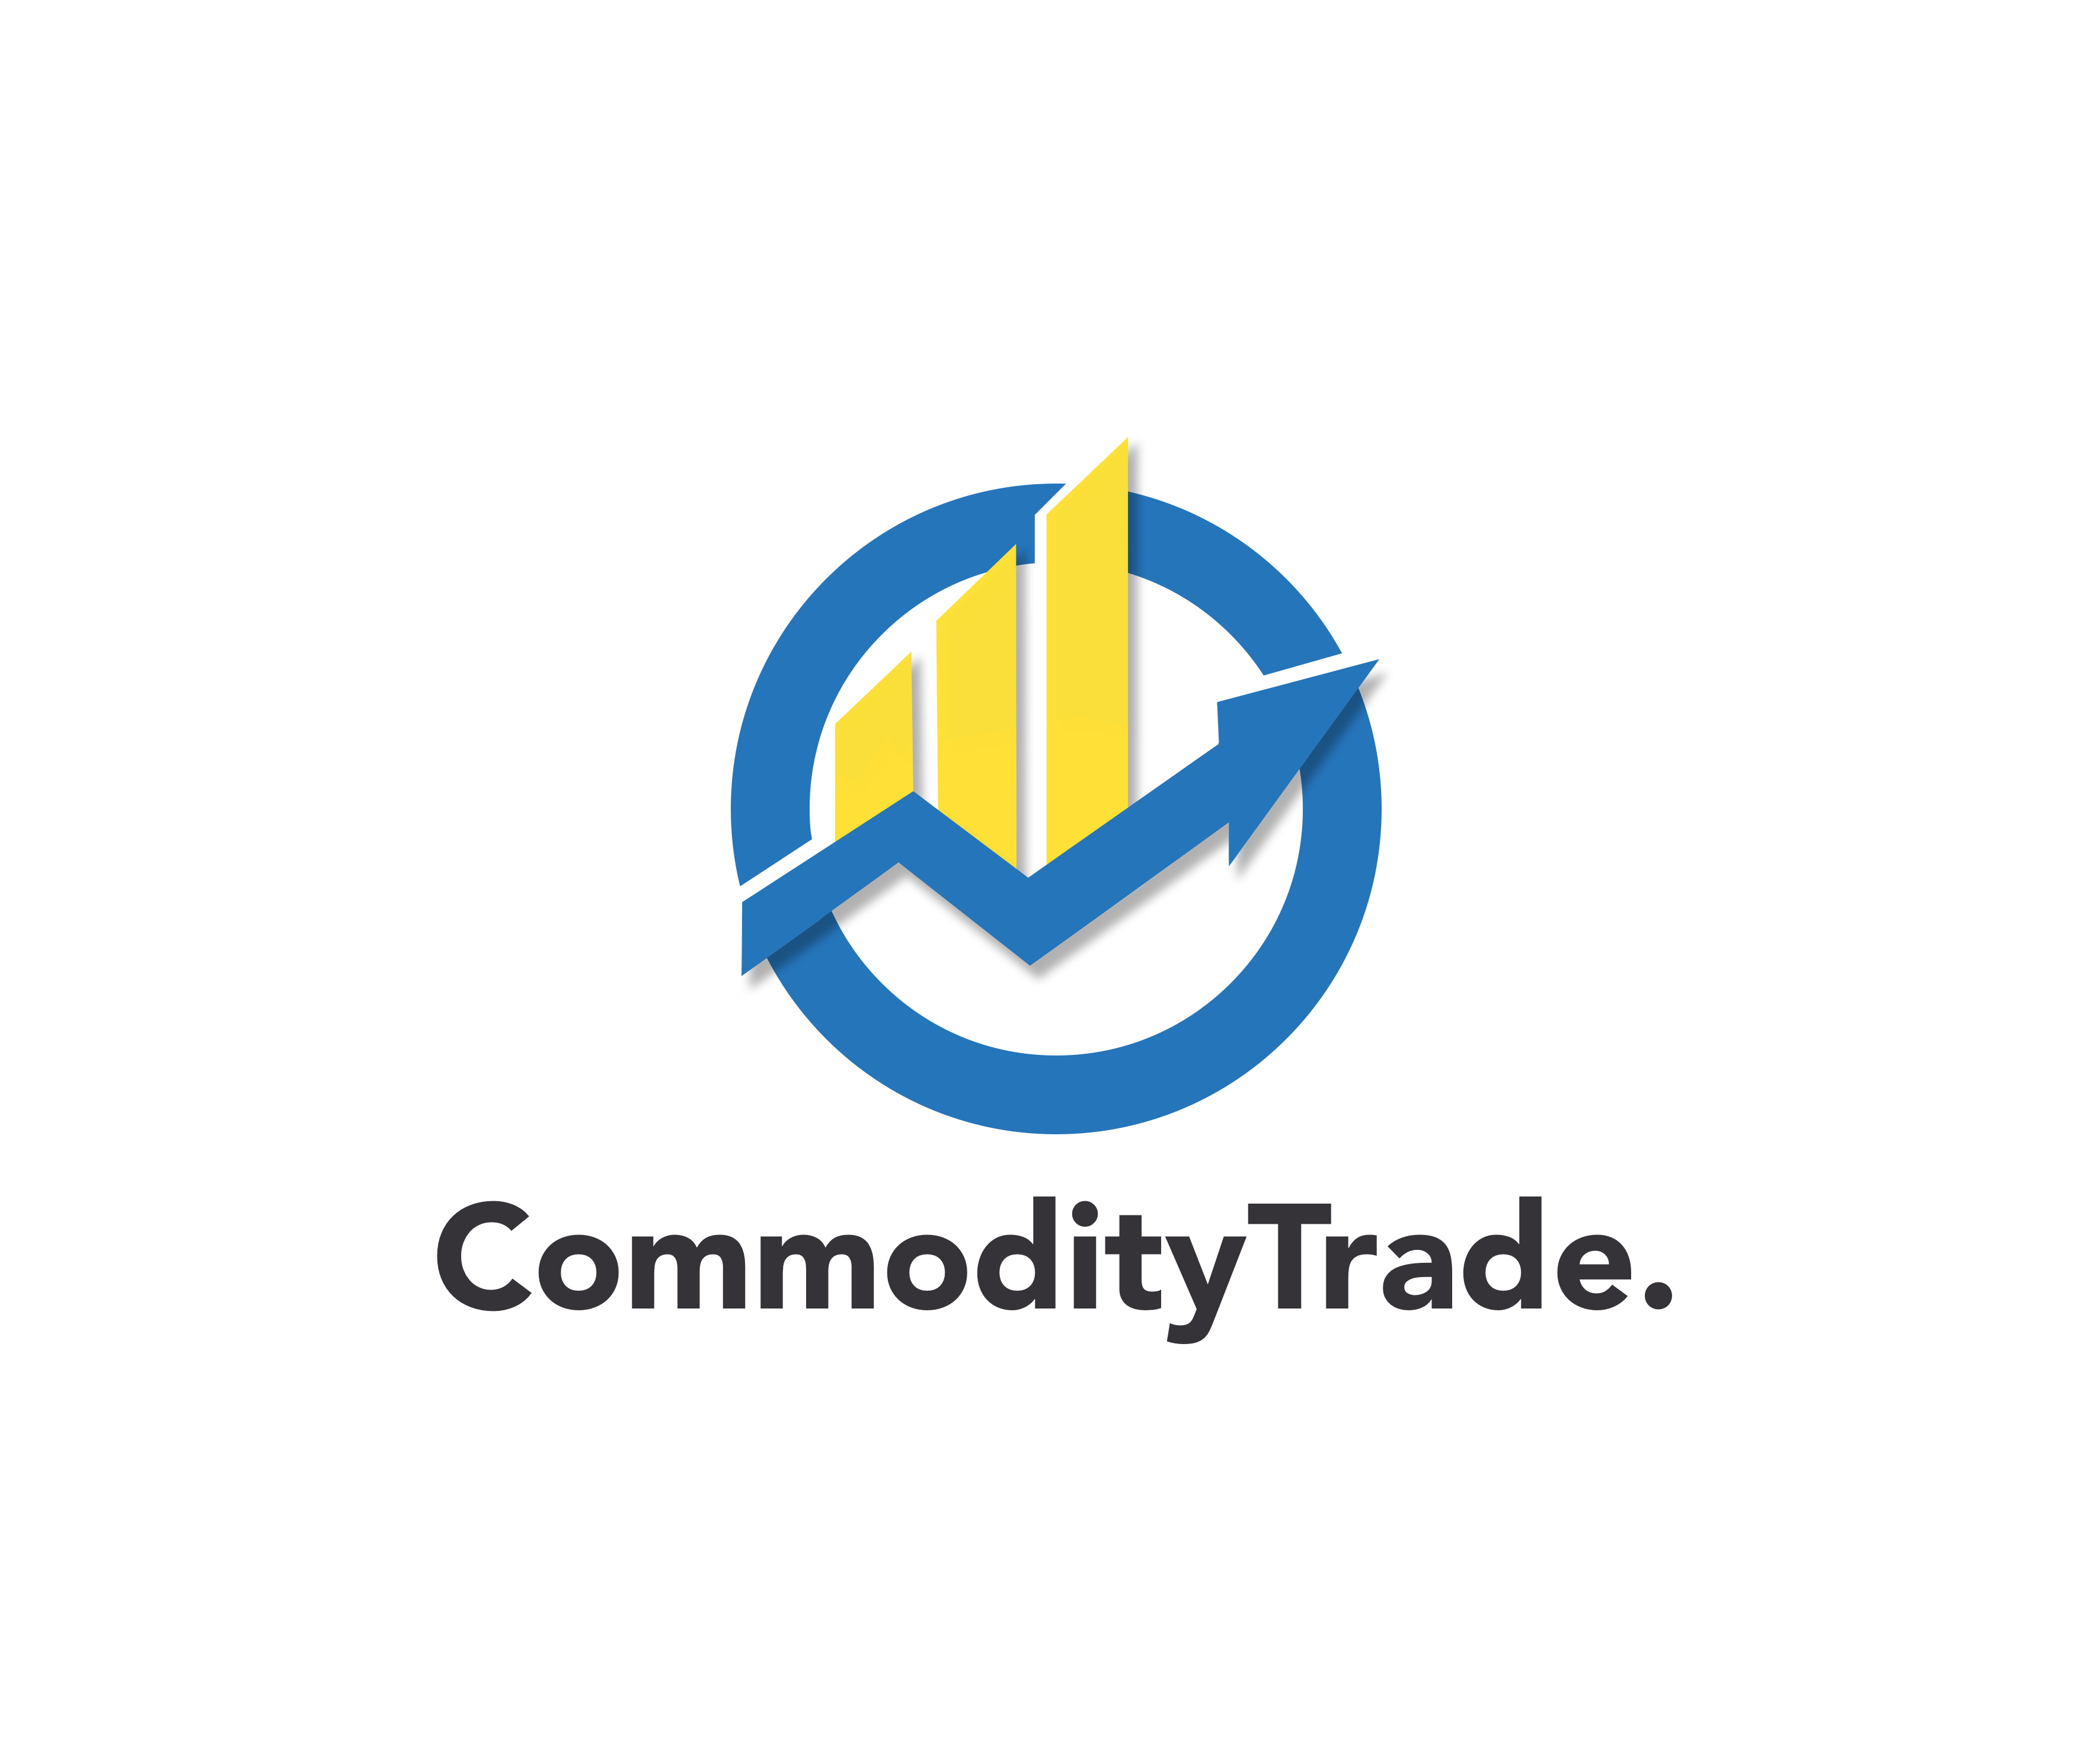 Commoditytradealert.com Is The New Worldwide Website That Compares Stock Market Brokers And Financial Services